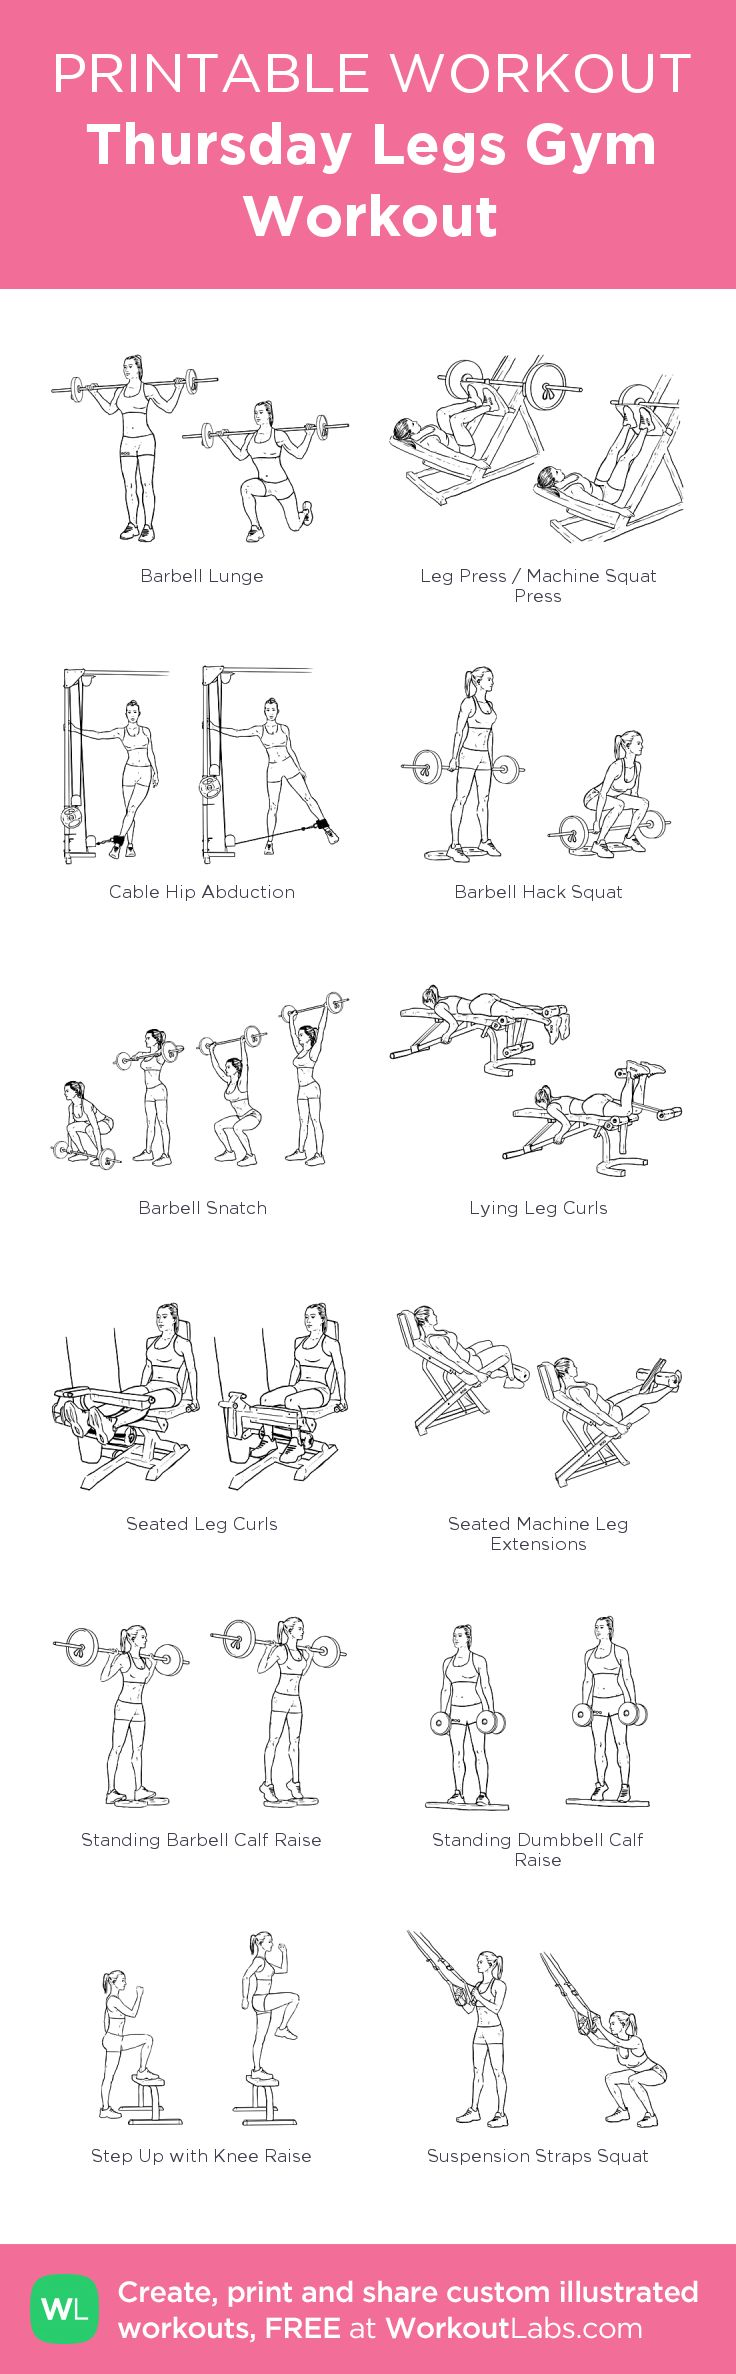 Thursday Legs Gym Workout: my visual workout created at WorkoutLabs.com • Click through to customize and download as a FREE PDF! #customworkout